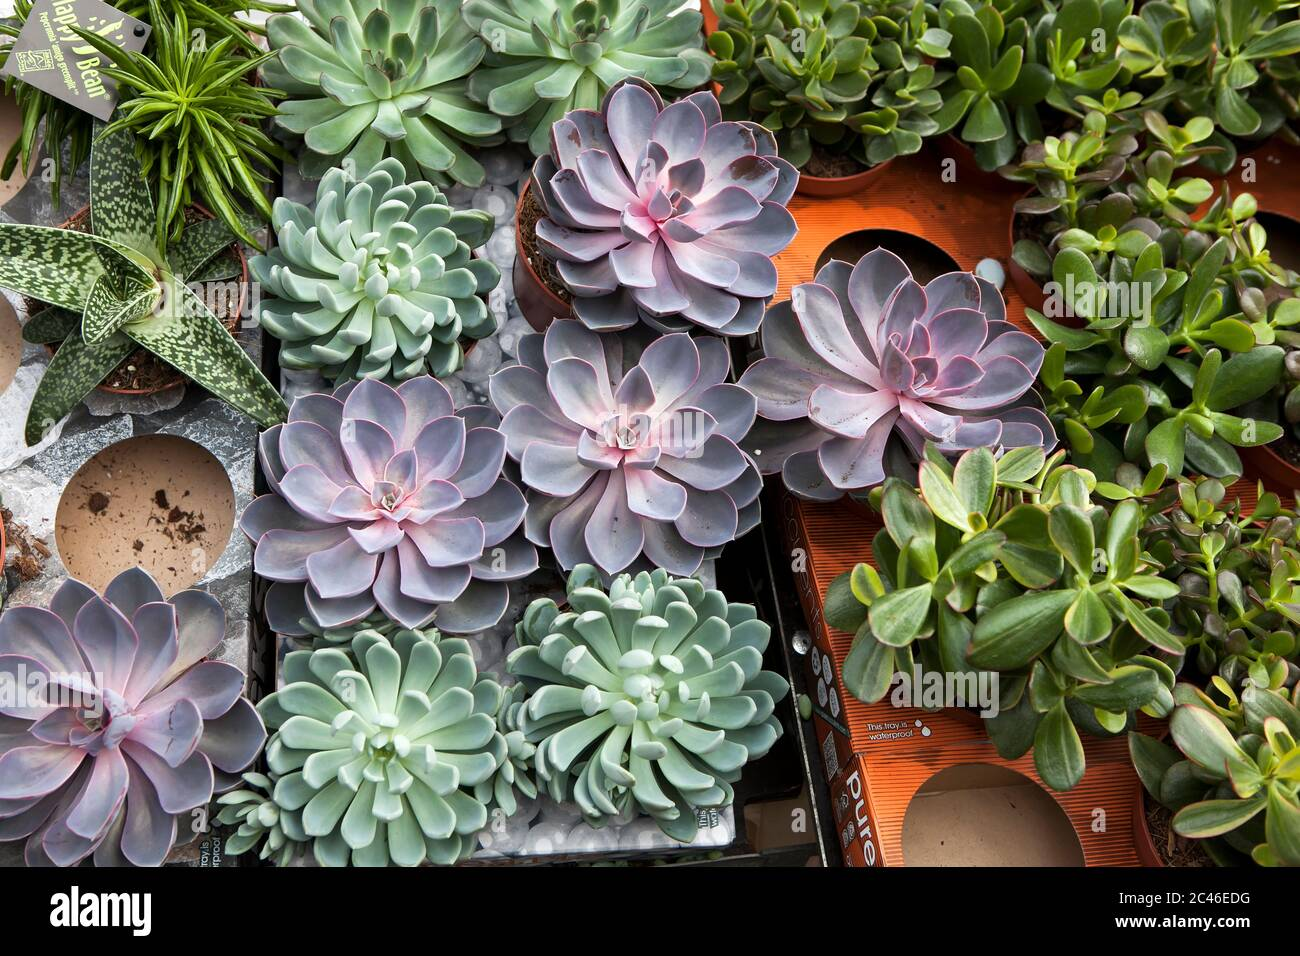 Types Of Succulents High Resolution Stock Photography And Images Alamy